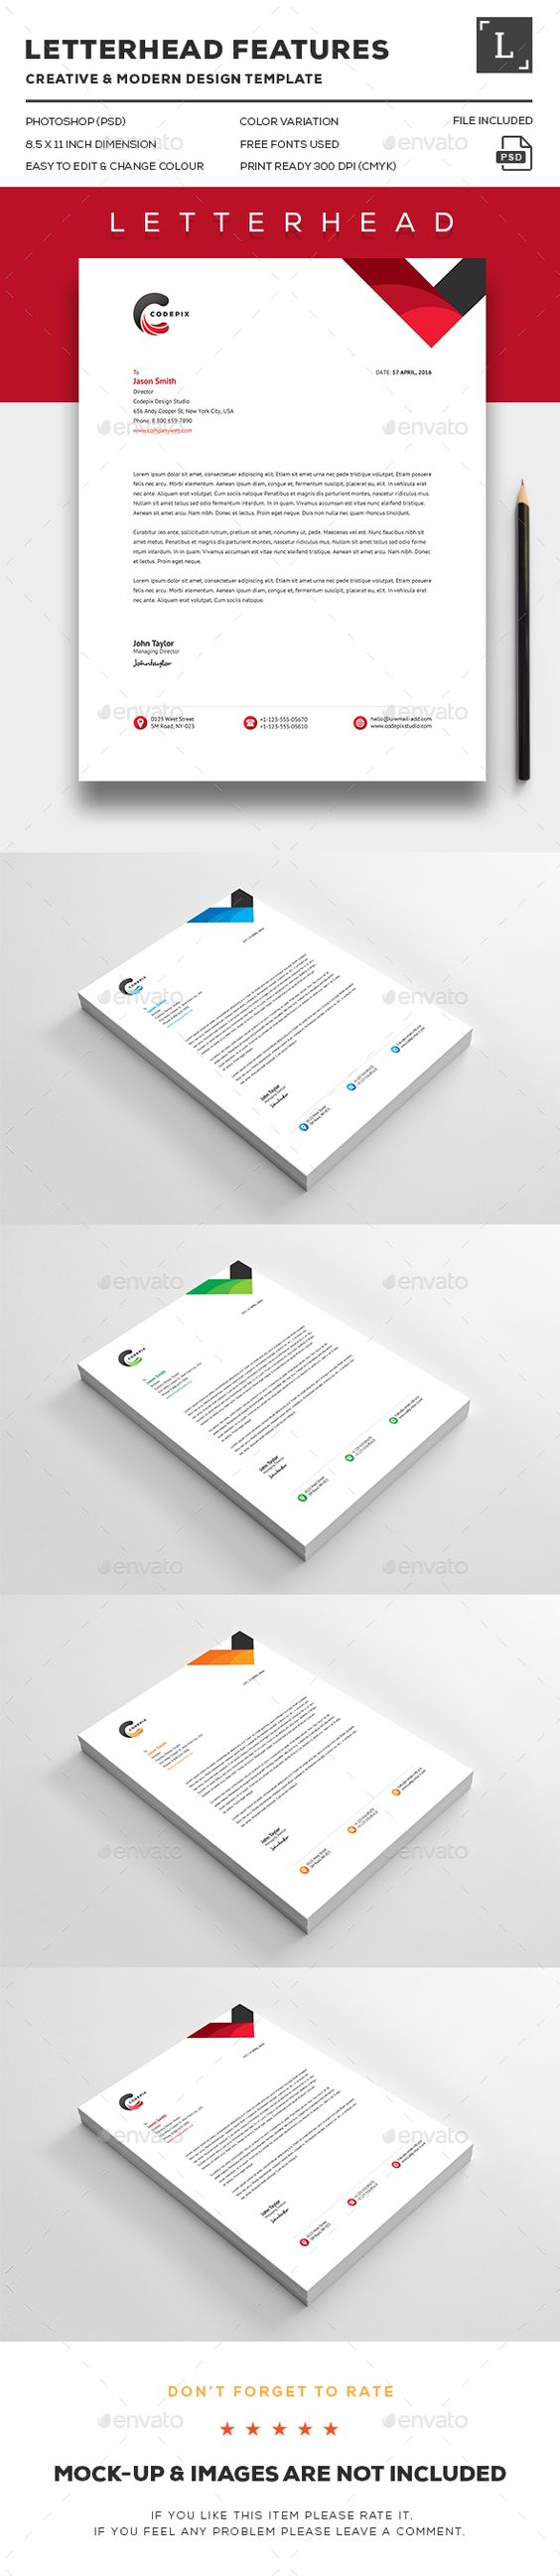 Letterhead Design Template - Stationery Print Template PSD. Download here: http://graphicriver.net/item/letterhead/16386979?ref=yinkira